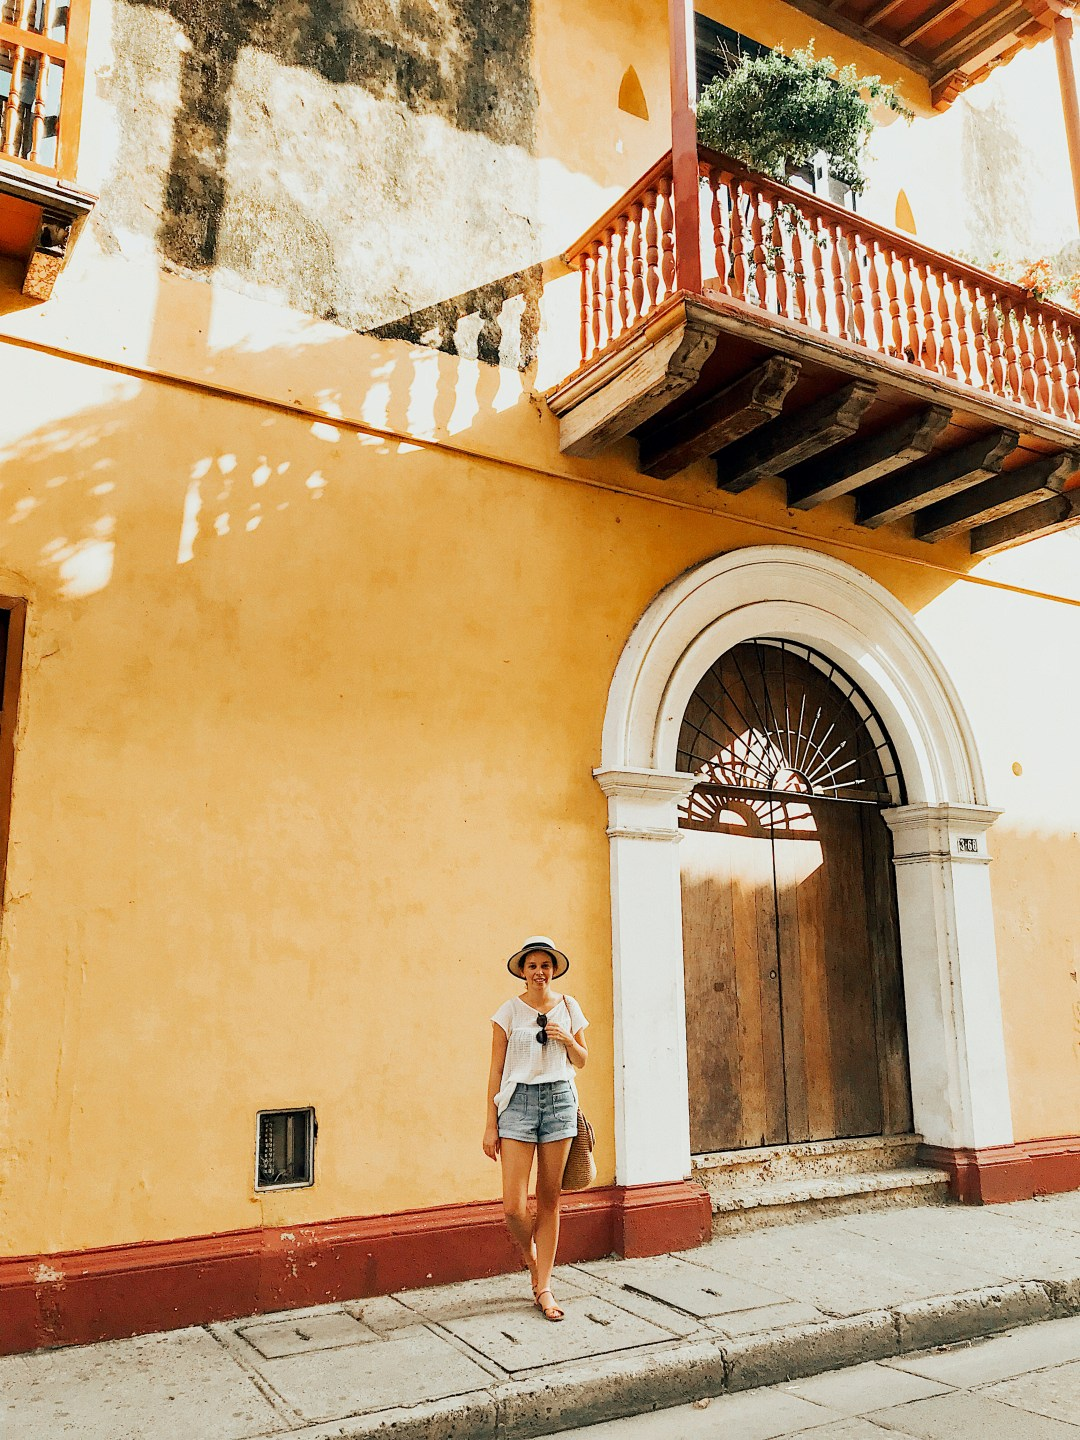 A colorful yellow home with a balcony in Cartagena, Colombia